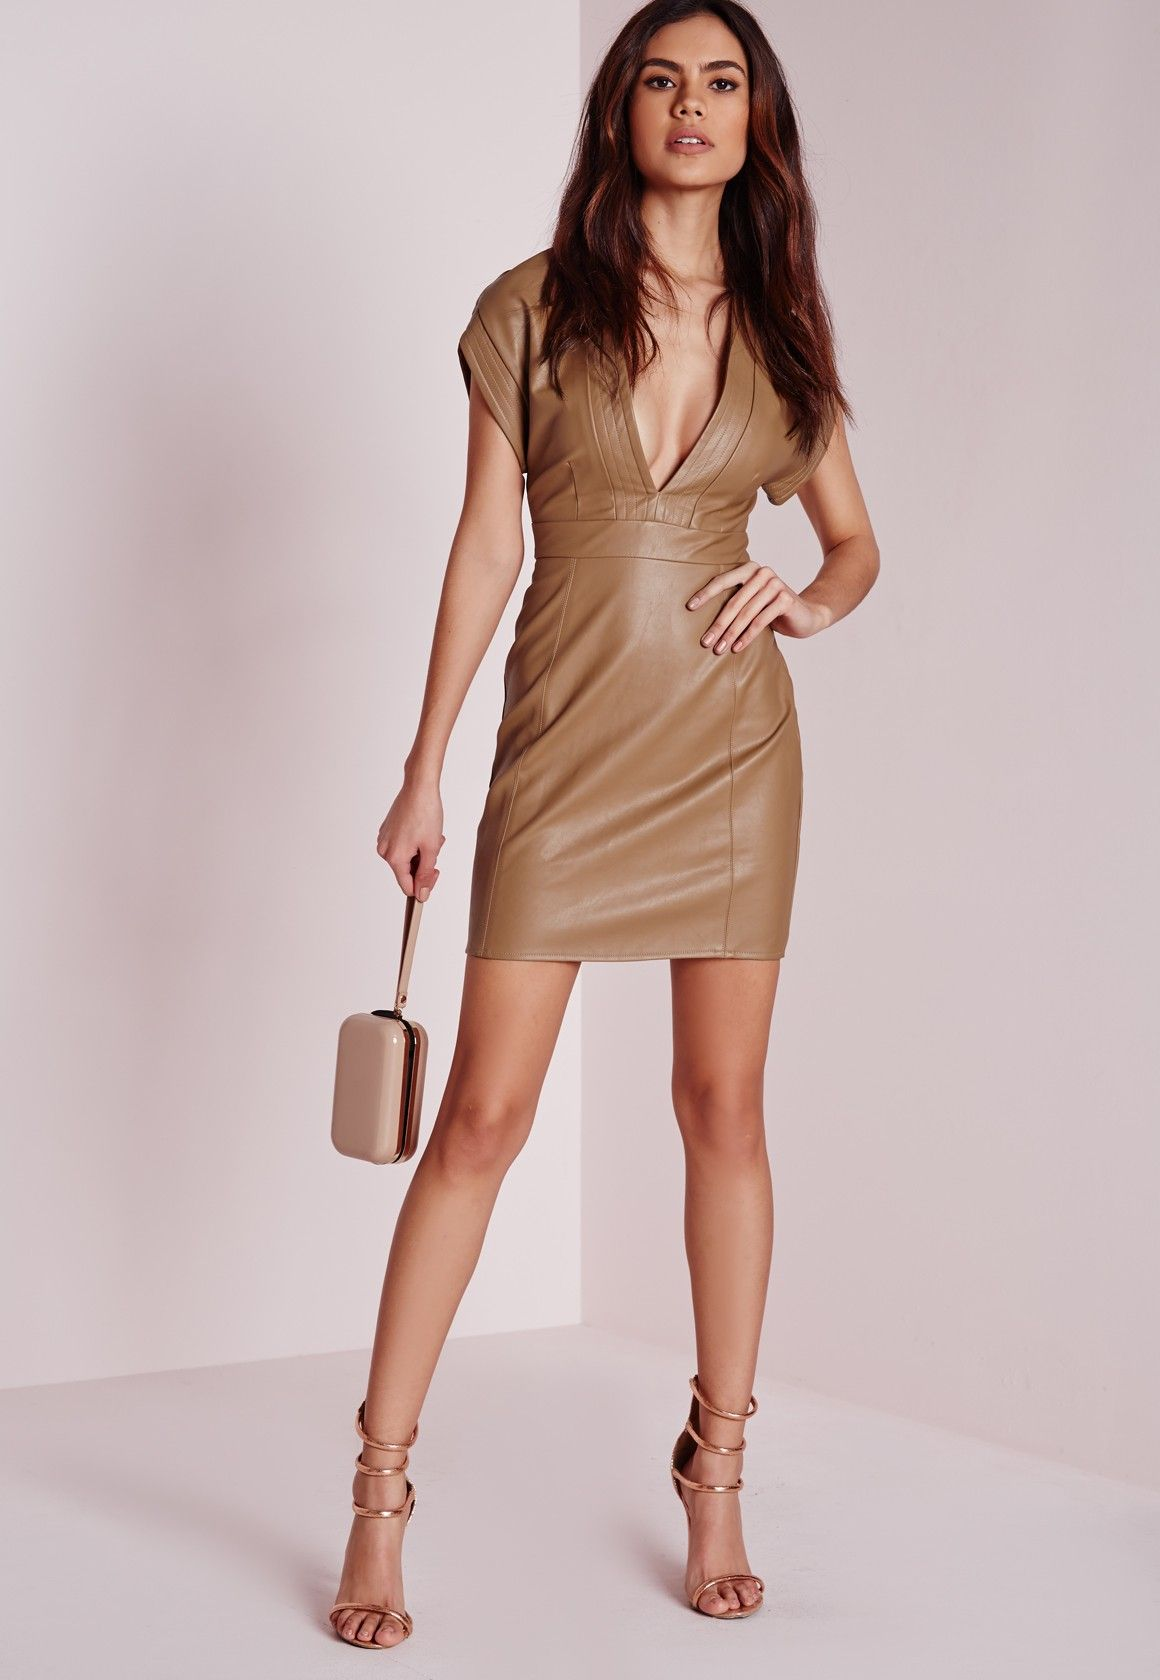 69945c94c09 Missguided - Faux Leather Bodycon Dress Tan